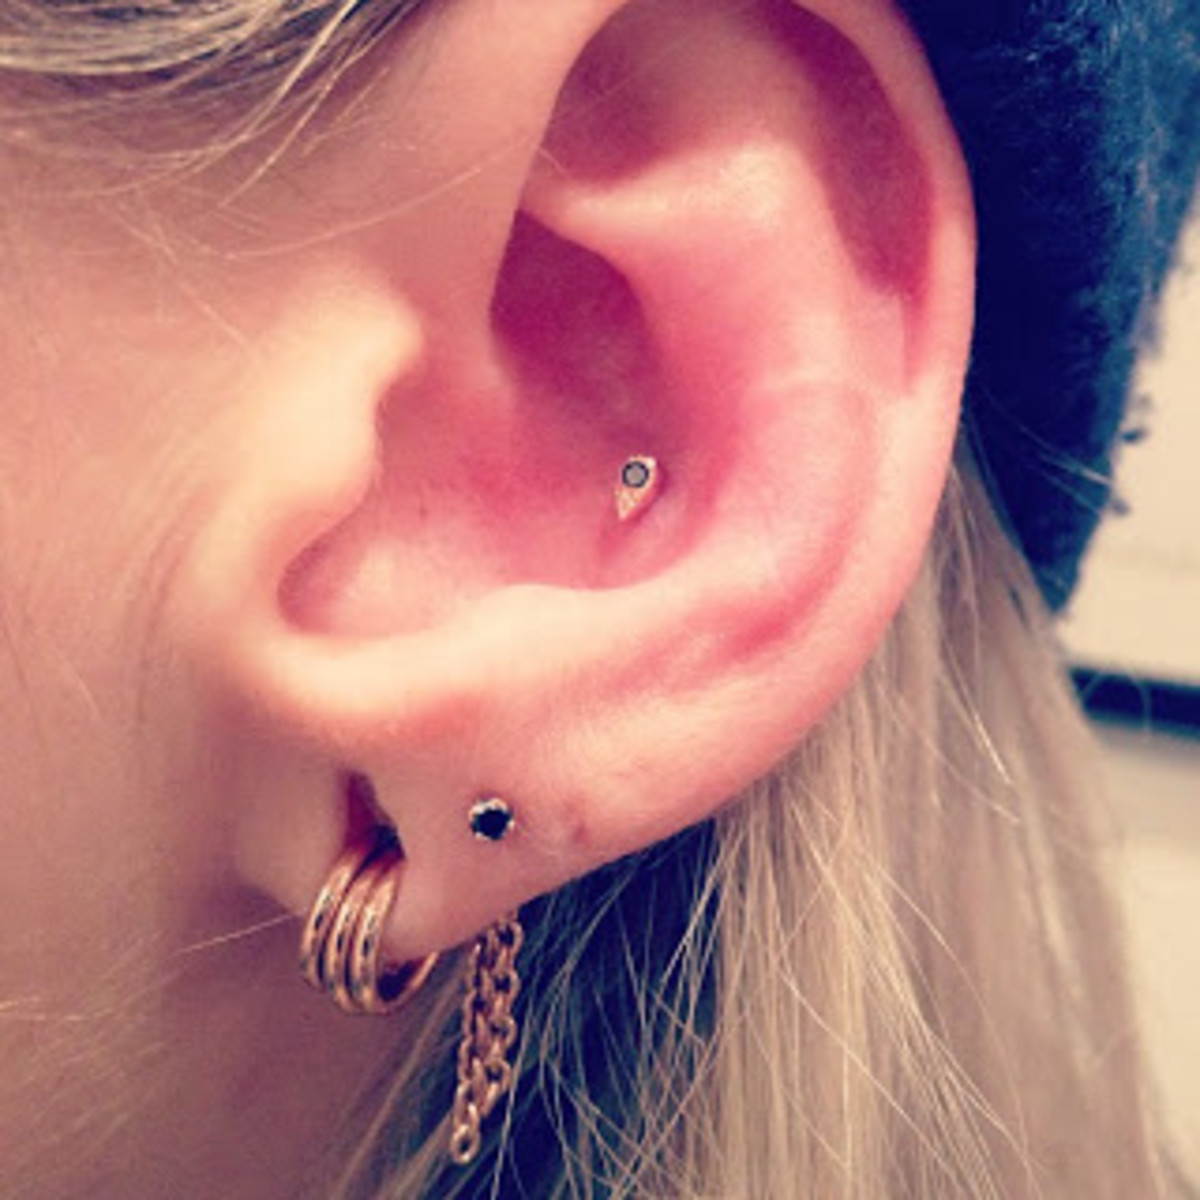 Standard lobe piercings and conch